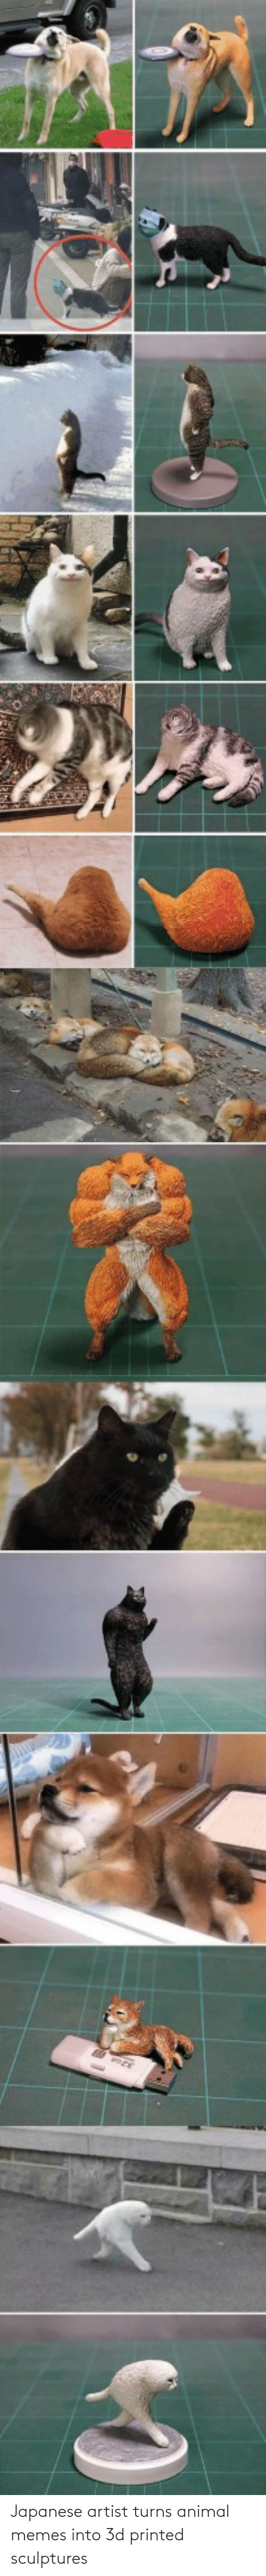 Animal Memes: Japanese artist turns animal memes into 3d printed sculptures